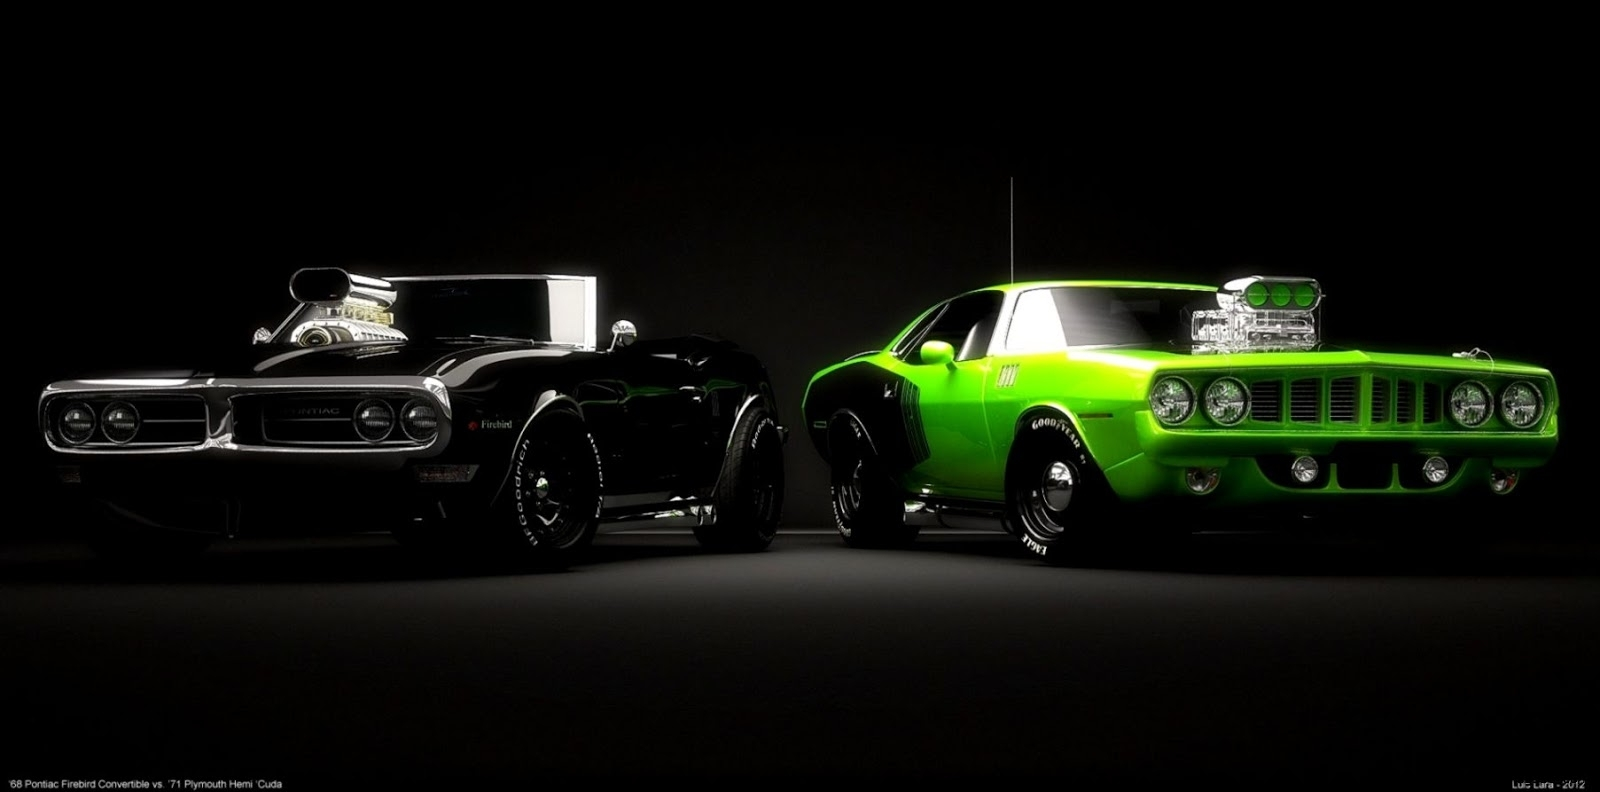 10 Most Popular Cool Muscle Car Wallpapers Full Hd 1920 1080 For Pc